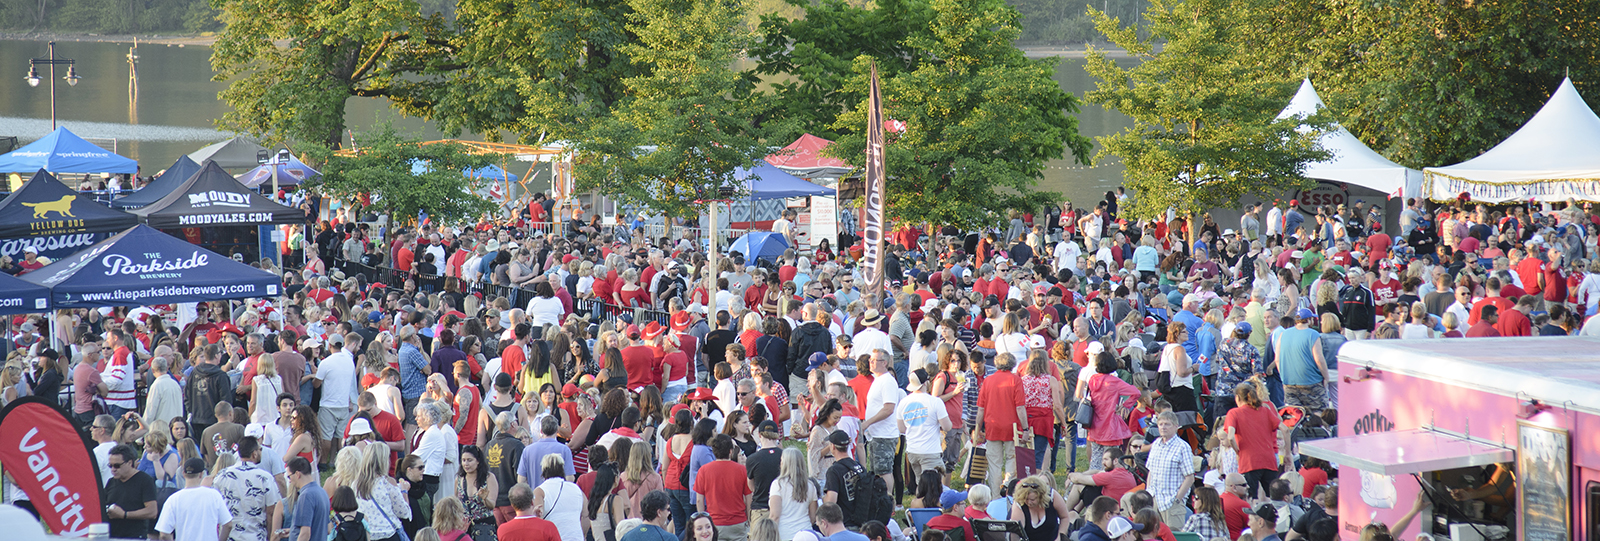 crowds at Rocky Point Park celebrating Canada Day